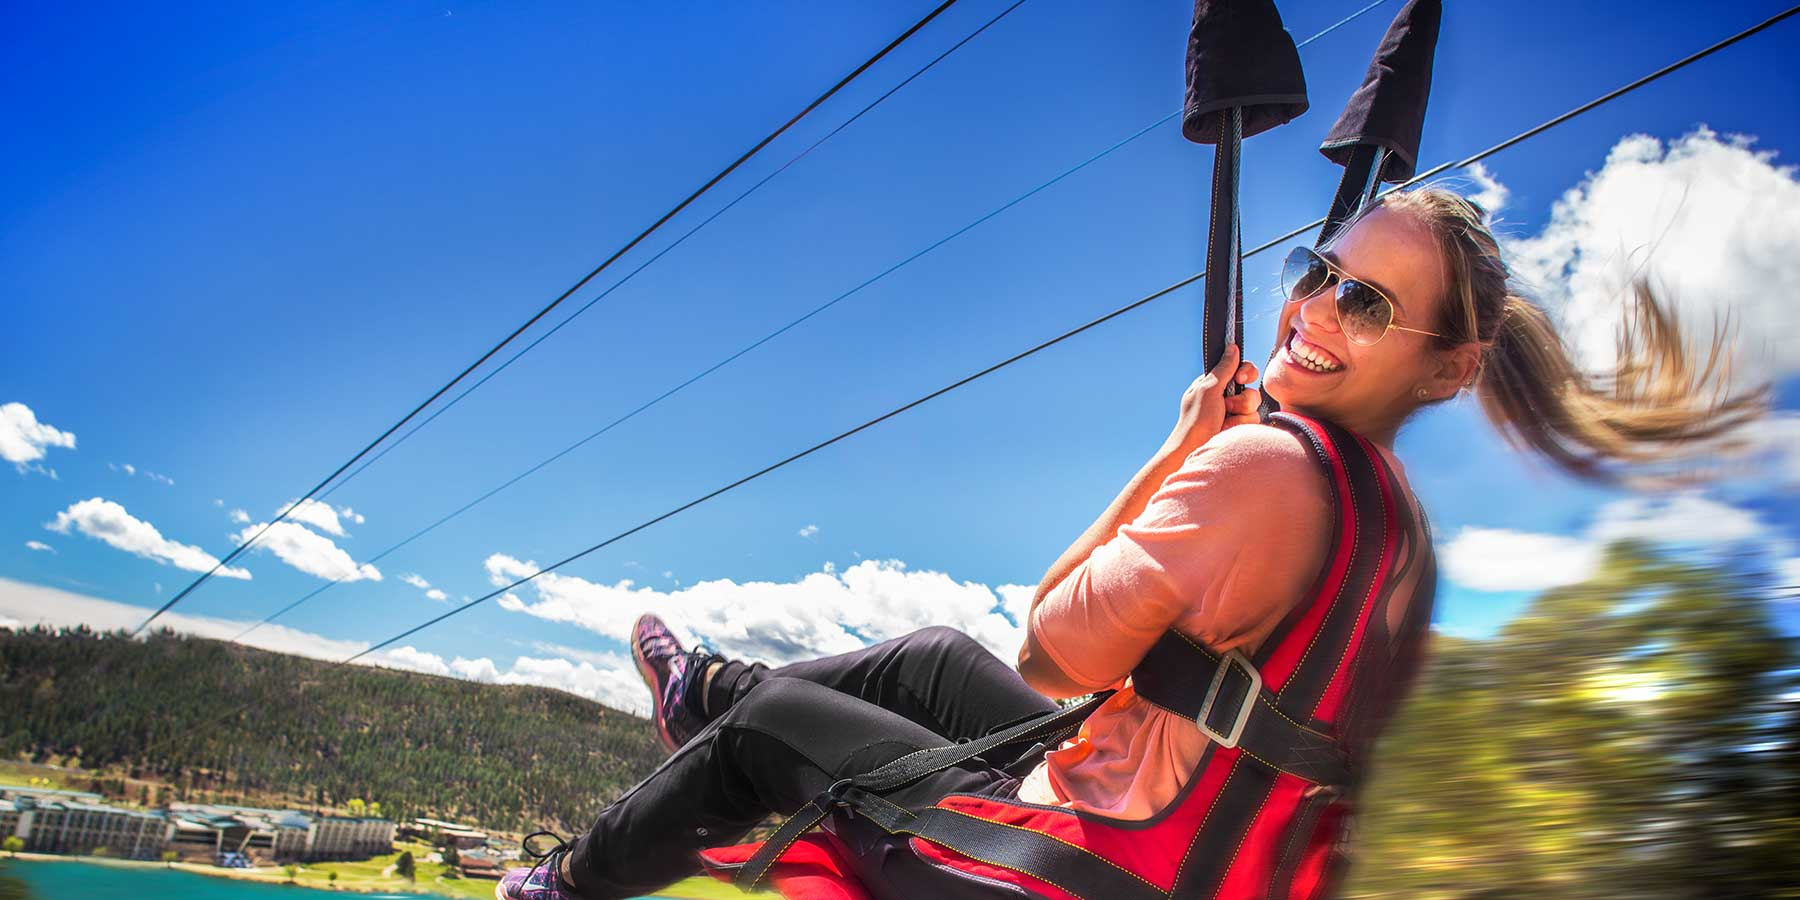 Take in the breathtaking views of Inn of the Mountain Gods as you glide over the crystal waters of Lake Mescalero. Offering parallel cables so riders can enjoy the view side-by-side.